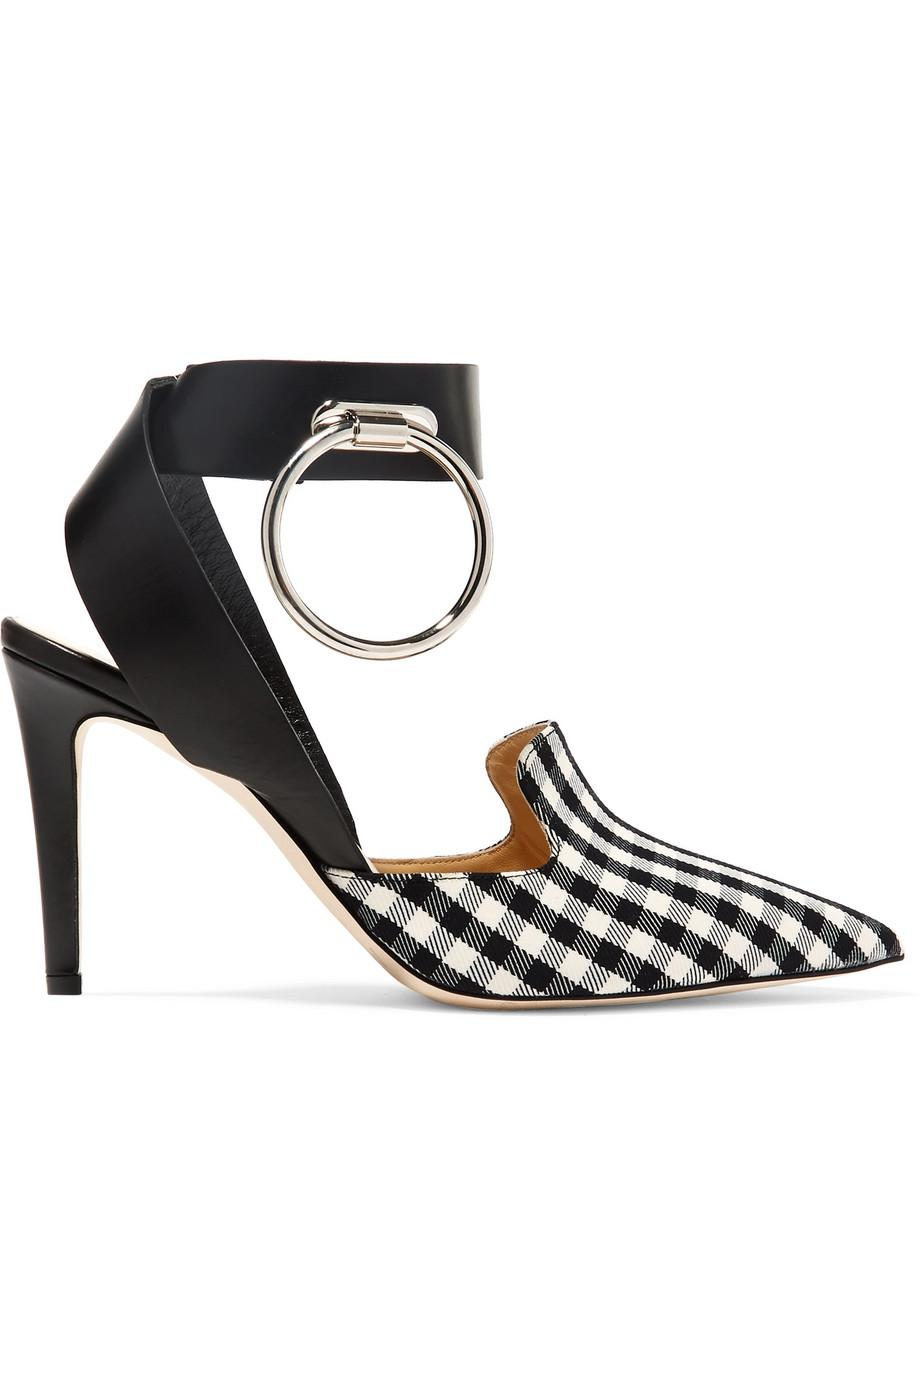 Embellished Leather And Gingham Twill Pumps - Black Monse qqzzZXr9l2